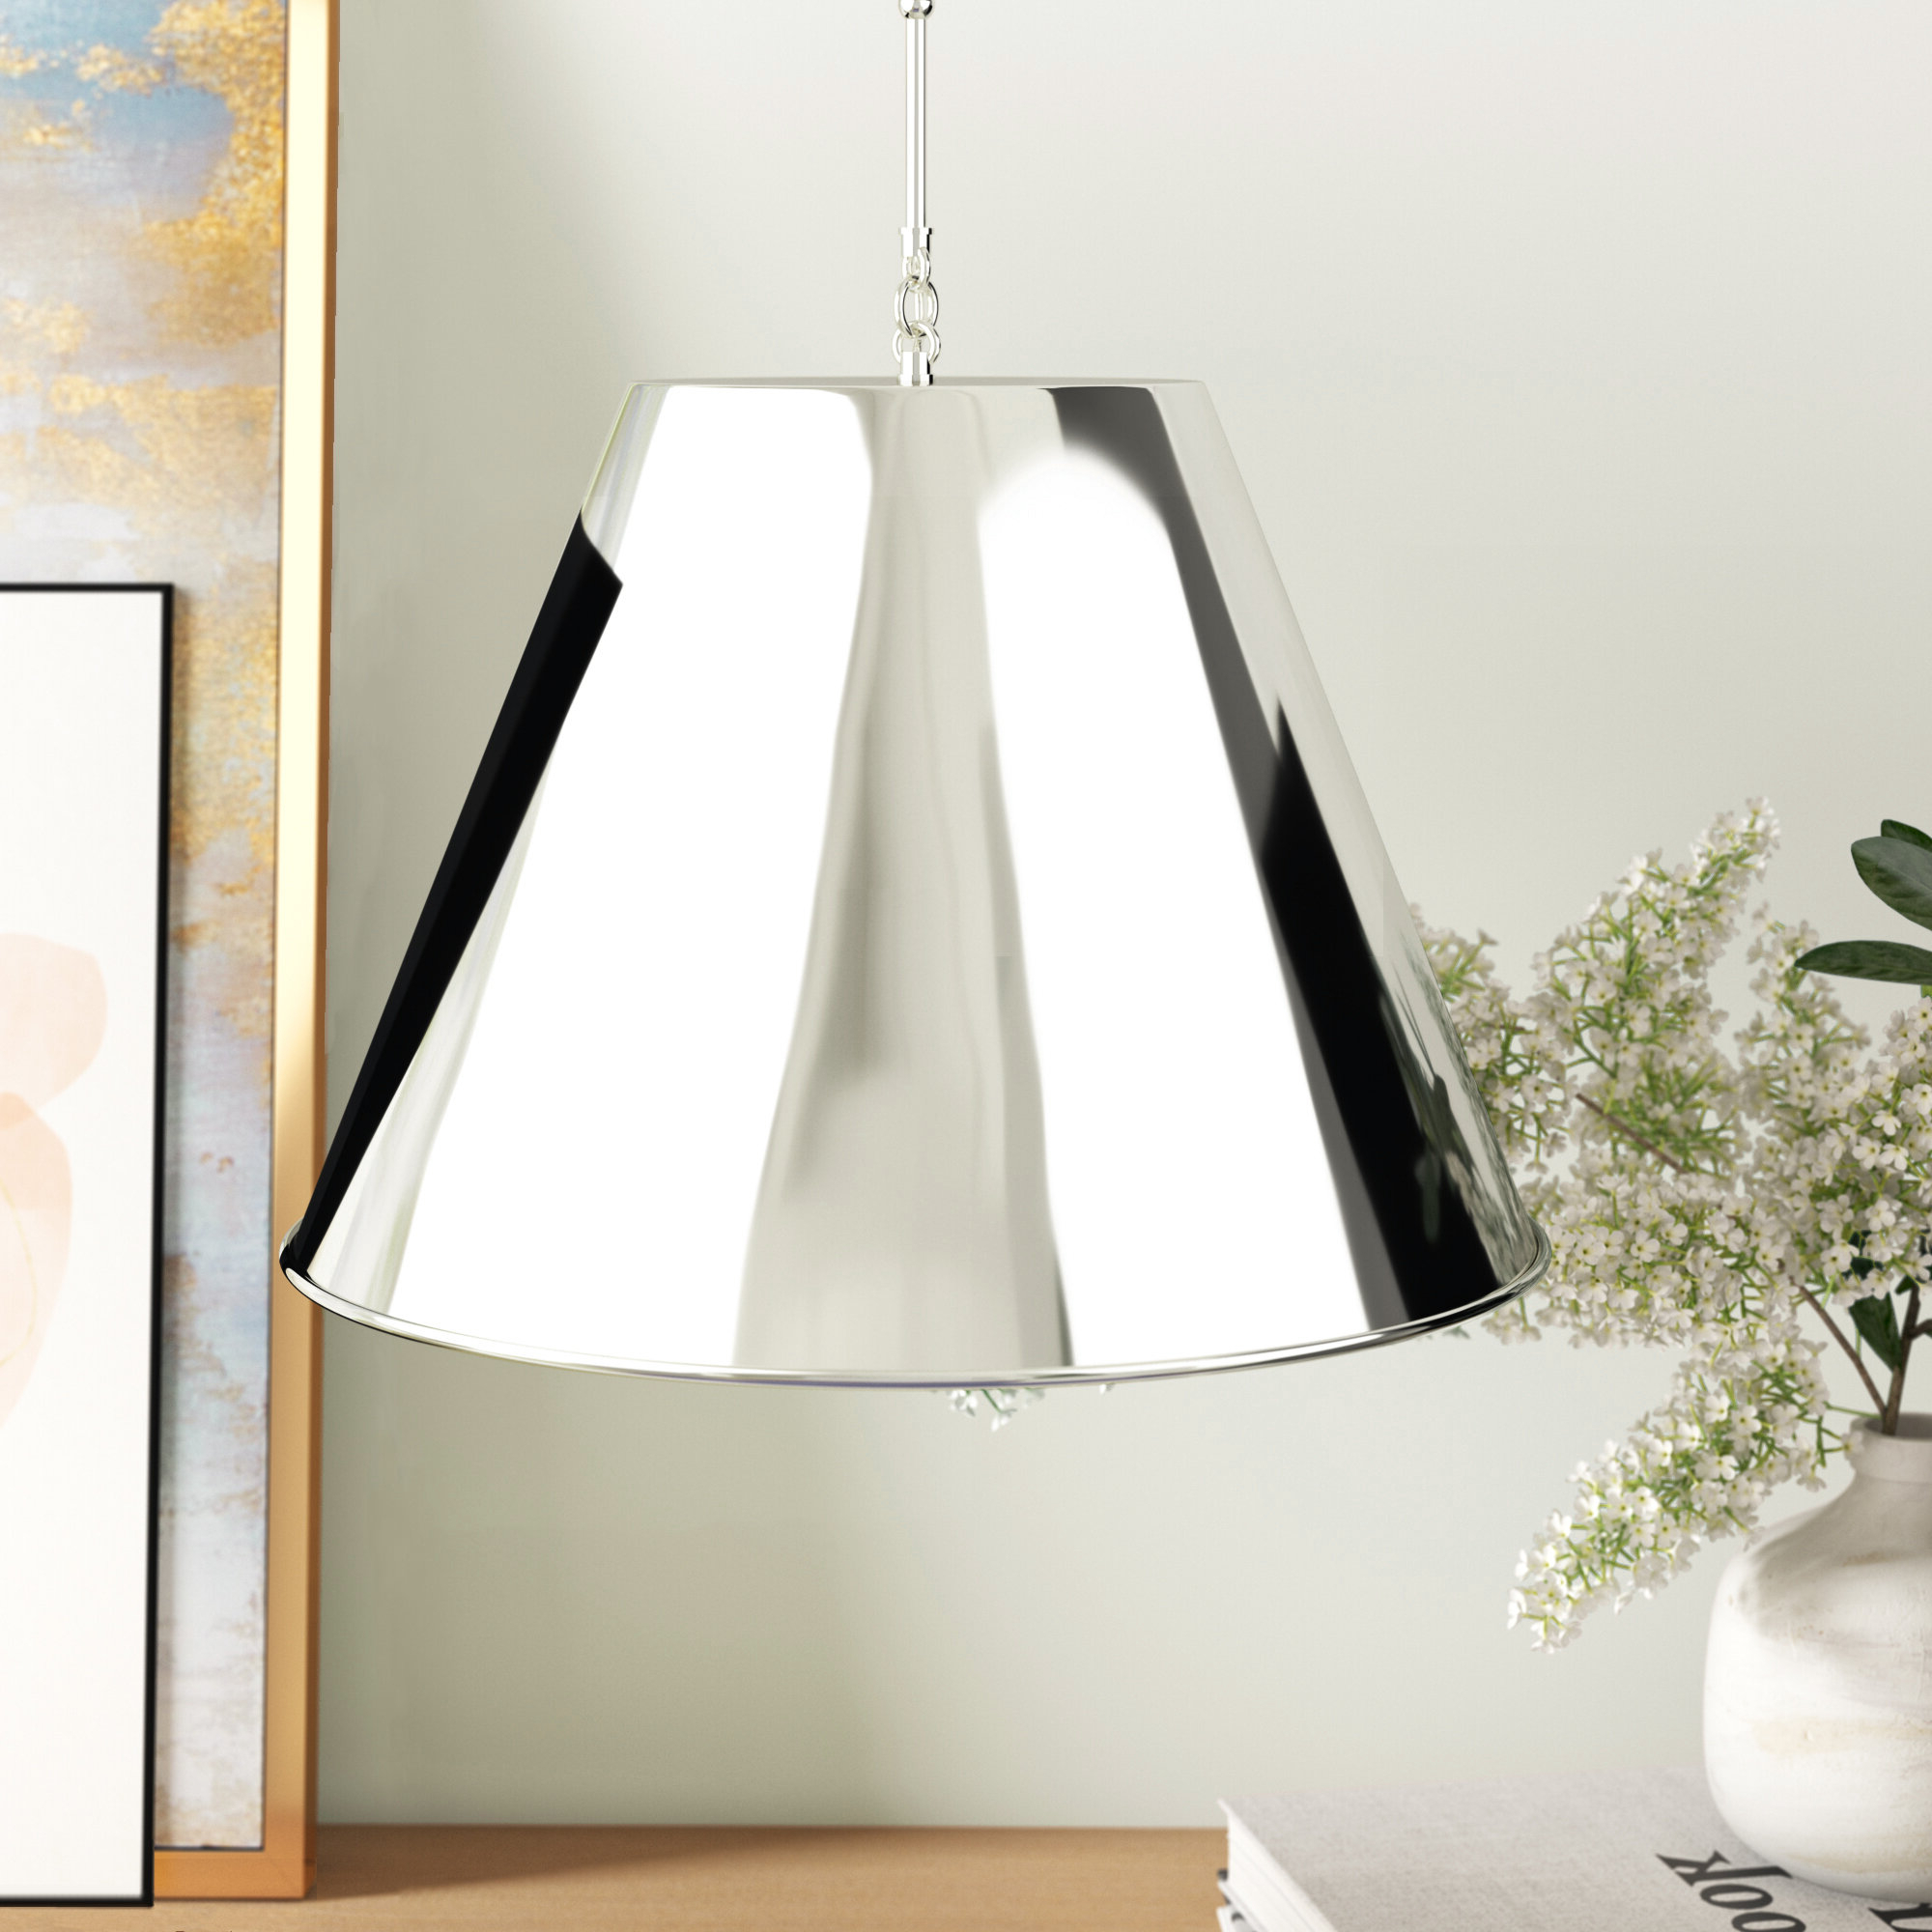 Nadeau 1 Light Single Cone Pendant Intended For 2019 Nadeau 1 Light Single Cone Pendants (View 8 of 20)